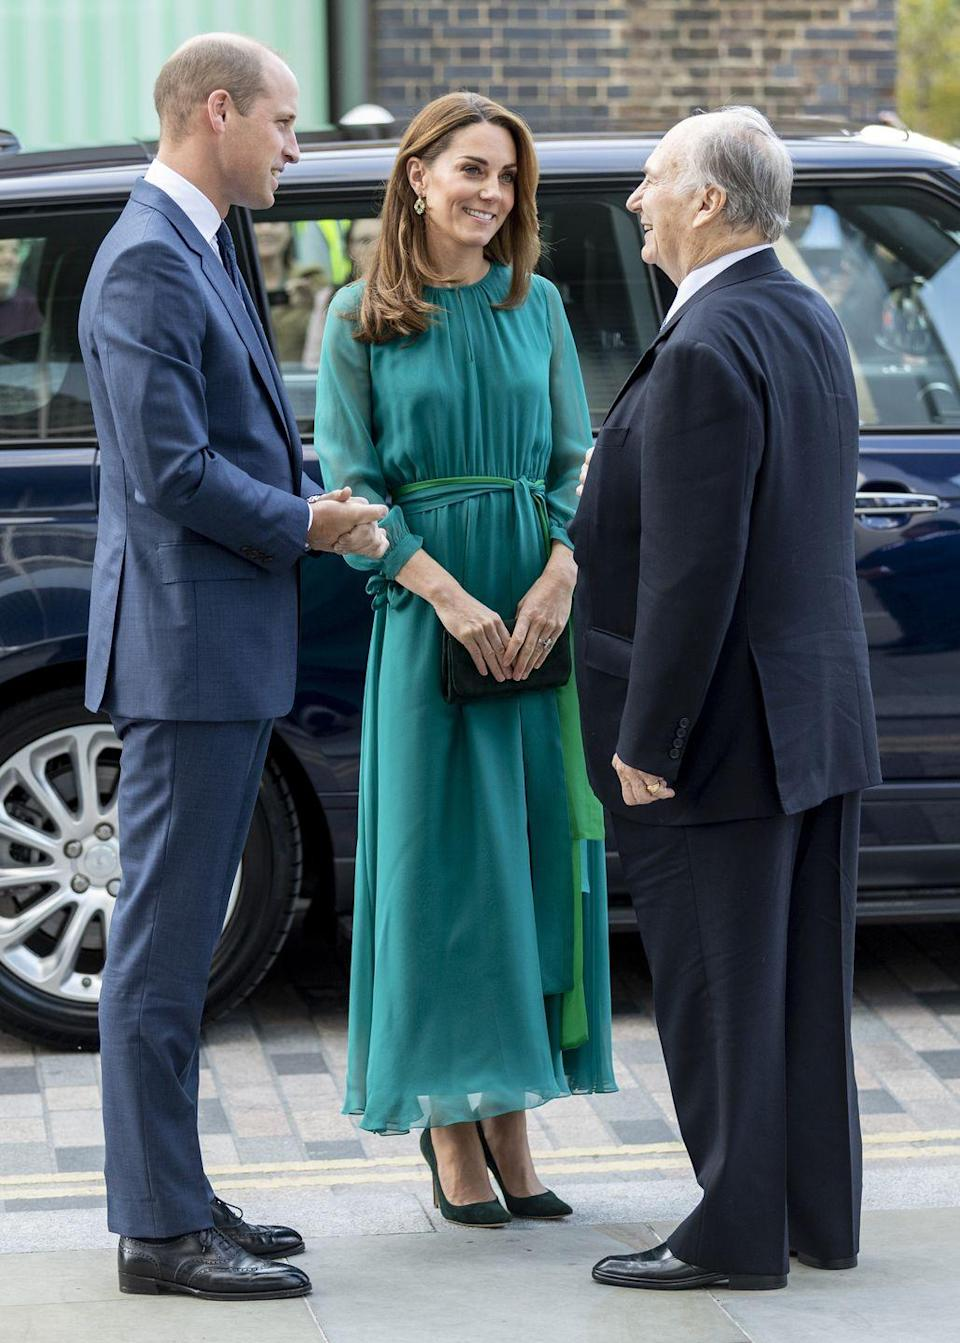 """<p>The Duchess of Cambridge stepped out for a meeting with Prince Shah Karim Al Hussaini, Aga Khan IV at the Aga Khan Centre wearing dark <a href=""""https://go.redirectingat.com?id=74968X1596630&url=https%3A%2F%2Fwww.net-a-porter.com%2Fus%2Fen%2Fproduct%2F1114994%2Faross_girl_x_soler%2Famanda-silk-georgette-maxi-dress&sref=https%3A%2F%2Fwww.townandcountrymag.com%2Fstyle%2Ffashion-trends%2Fnews%2Fg1633%2Fkate-middleton-fashion%2F"""" rel=""""nofollow noopener"""" target=""""_blank"""" data-ylk=""""slk:green dress by ARoss Girl x Soler"""" class=""""link rapid-noclick-resp"""">green dress by ARoss Girl x Soler</a>. Kate completed the look with <a href=""""https://www.zeenwoman.com/row/wxe92033-green-dazzling-ceramic-drops"""" rel=""""nofollow noopener"""" target=""""_blank"""" data-ylk=""""slk:an affordable pair of earrings by the Pakistani designer Zeen"""" class=""""link rapid-noclick-resp"""">an affordable pair of earrings by the Pakistani designer Zeen</a>.</p>"""